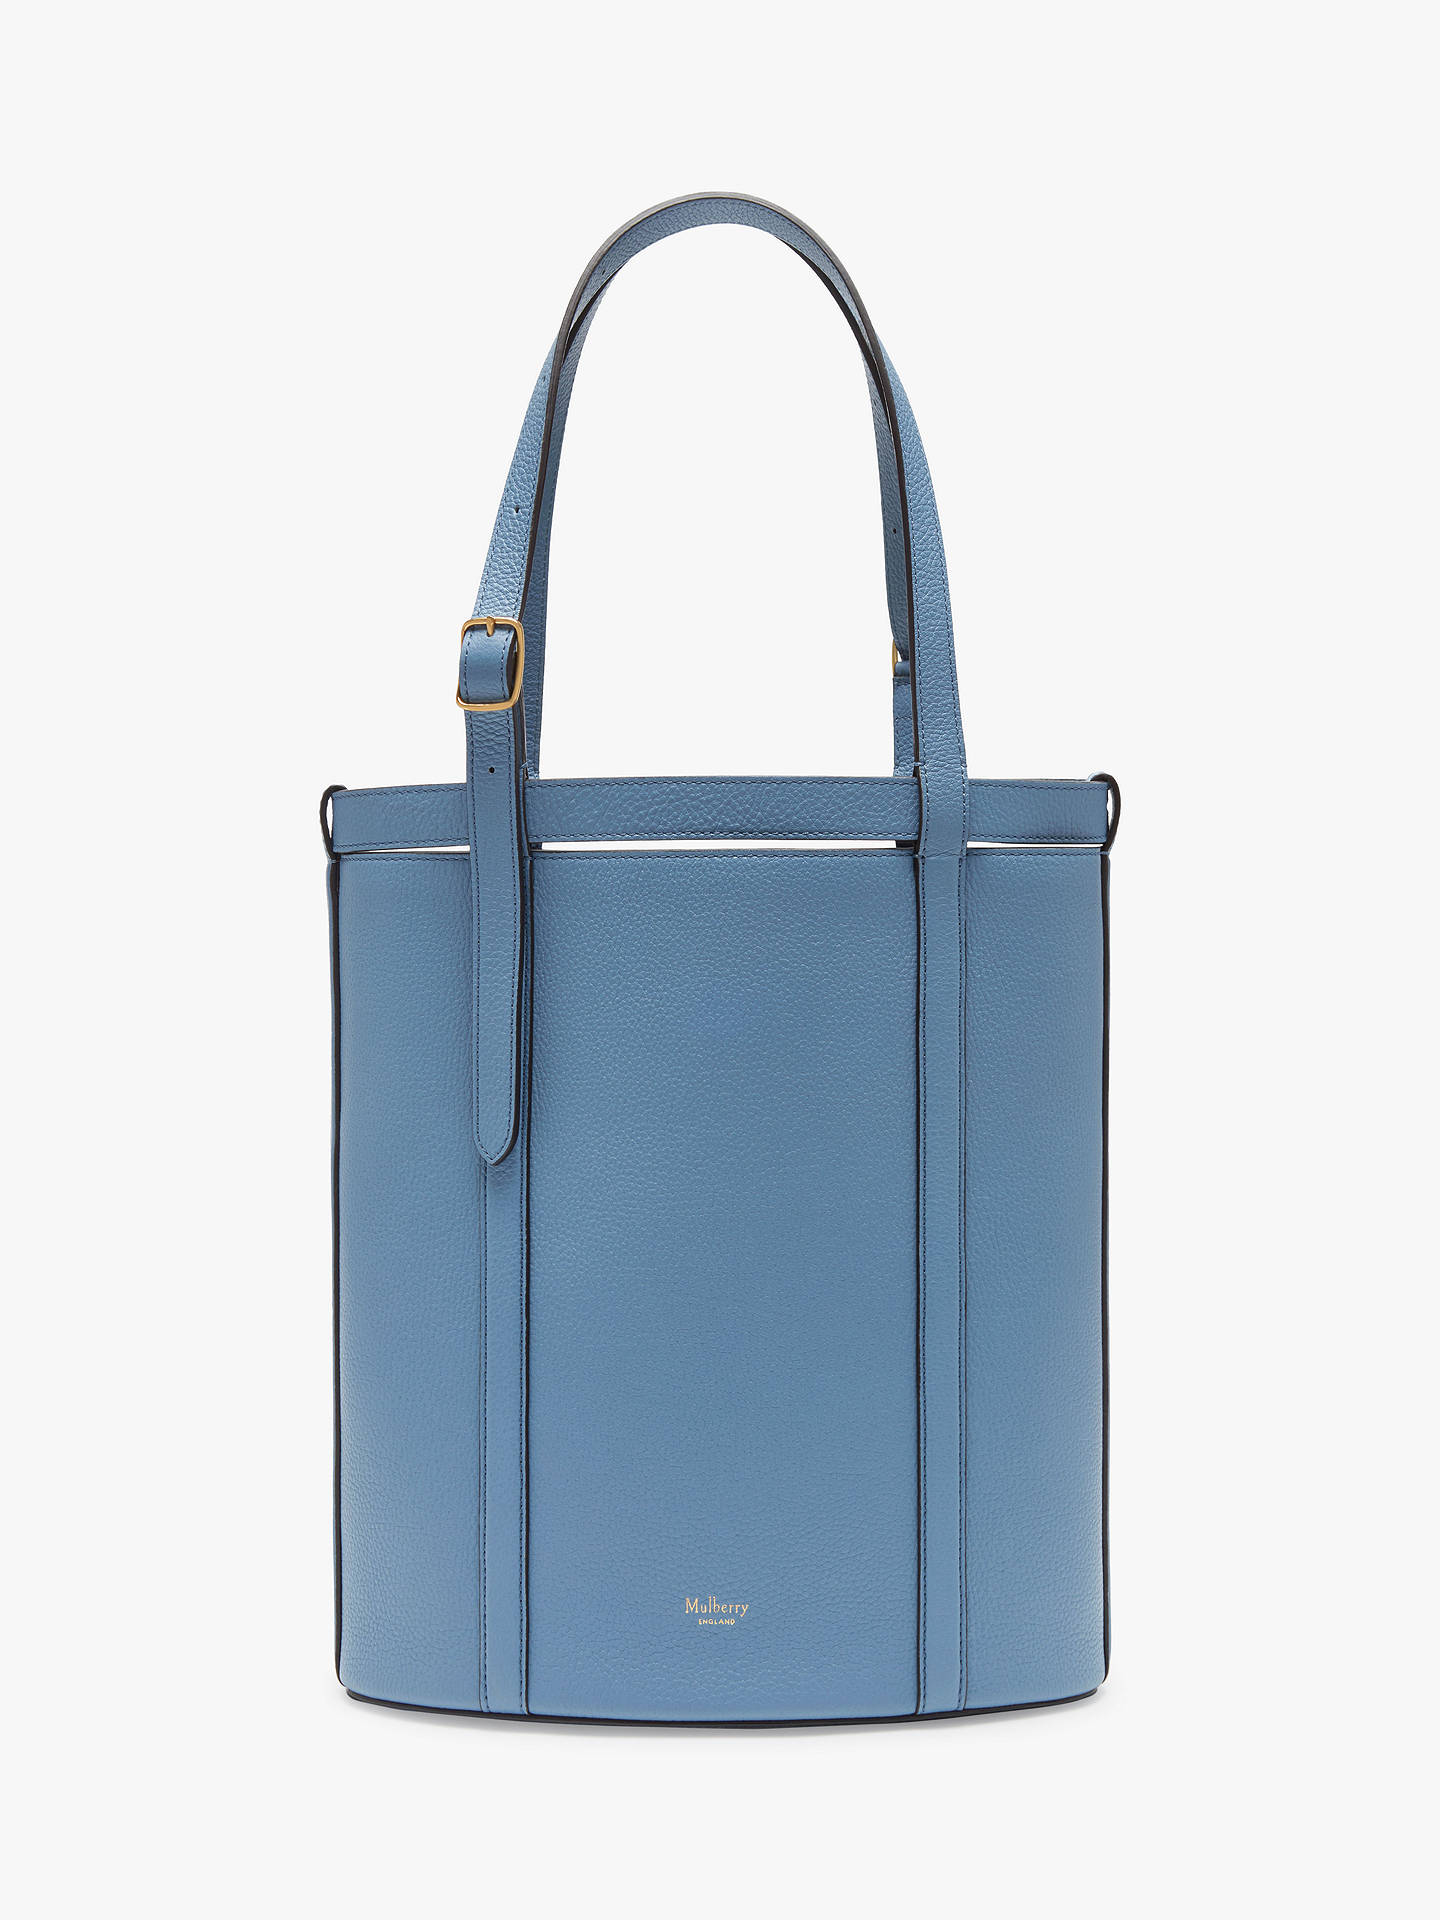 Mulberry Wilton Classic Grain Leather Small Bucket Tote Bag Lavender Blue Online At Johnlewis